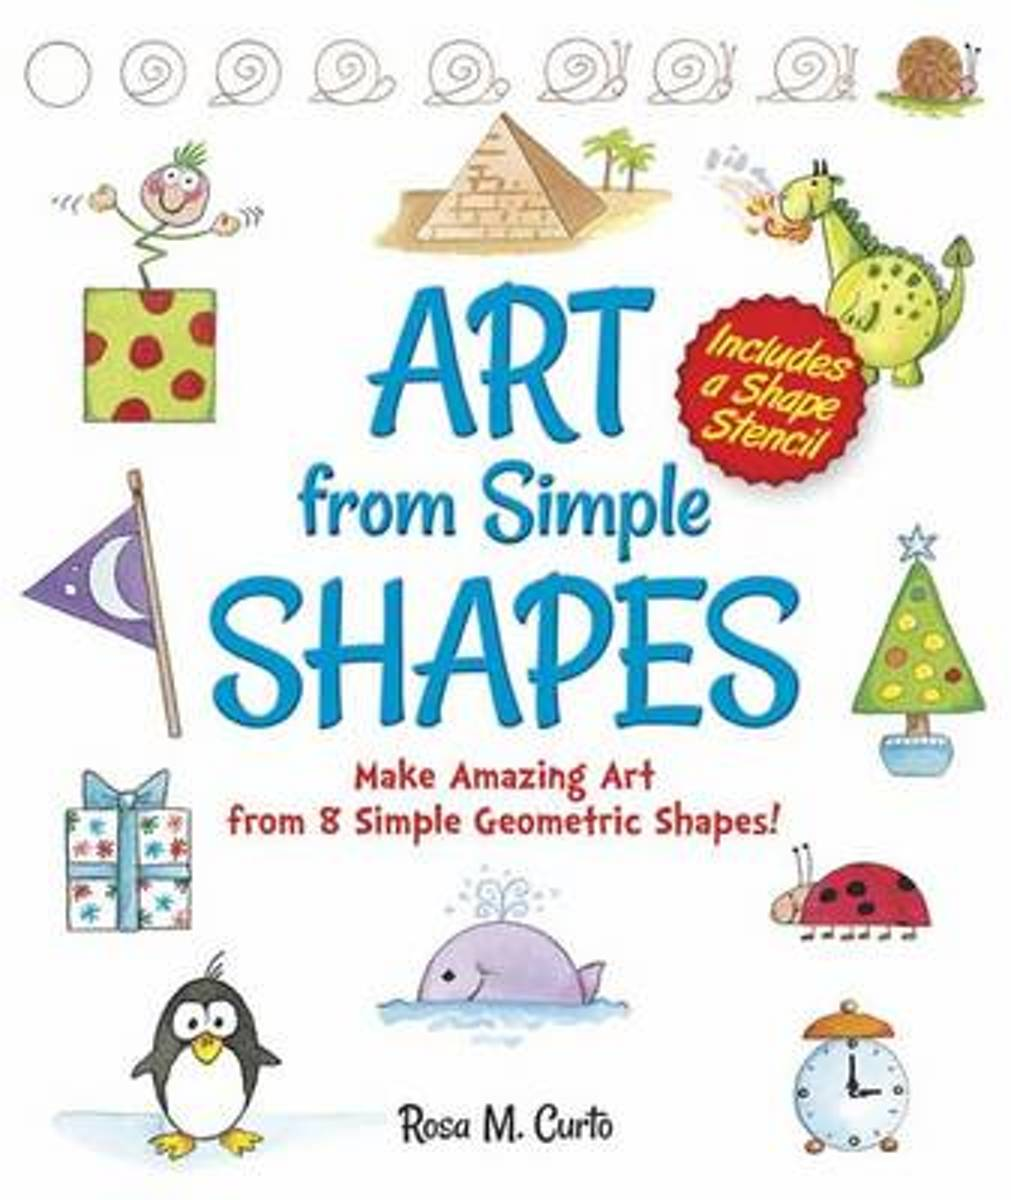 Art from Simple Shapes Make Amazing Art from 8Simple Geometric Shapes! Includes a Shape Stencil